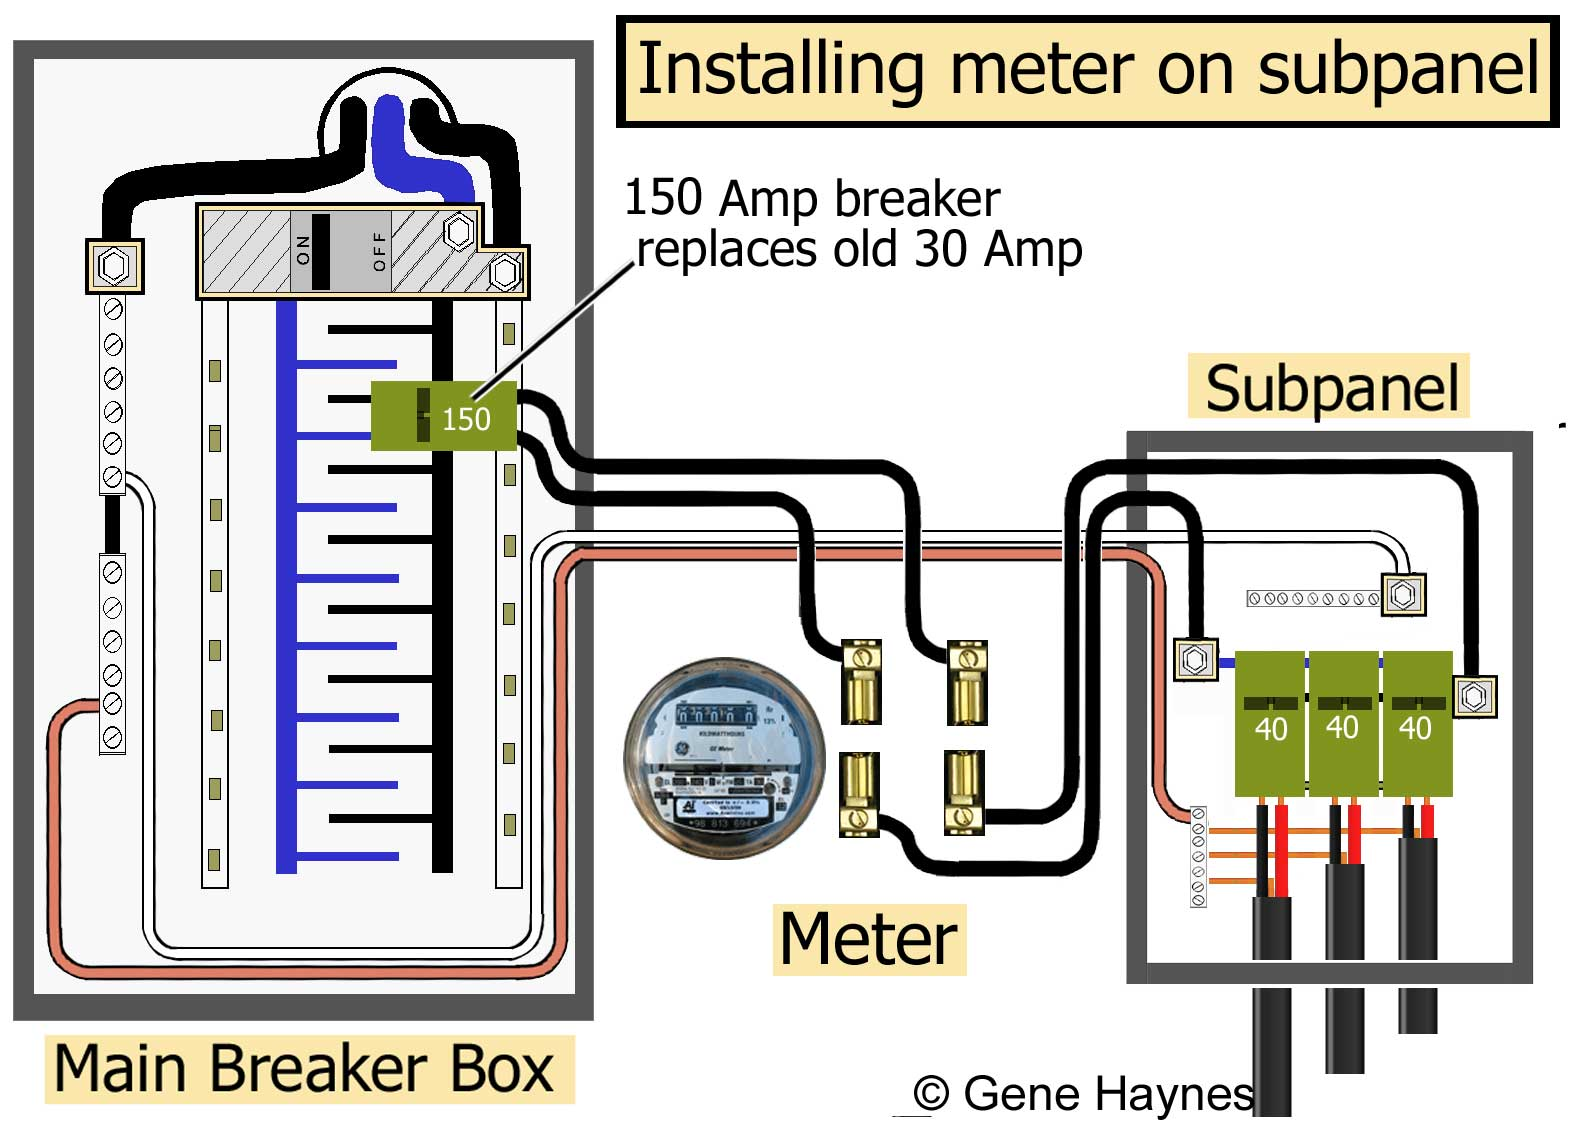 hook up main electrical panel Wiring inverter load group (sub panels system, you must hook up six wires: the a completely separate panel and feeding it from a main ac panel.